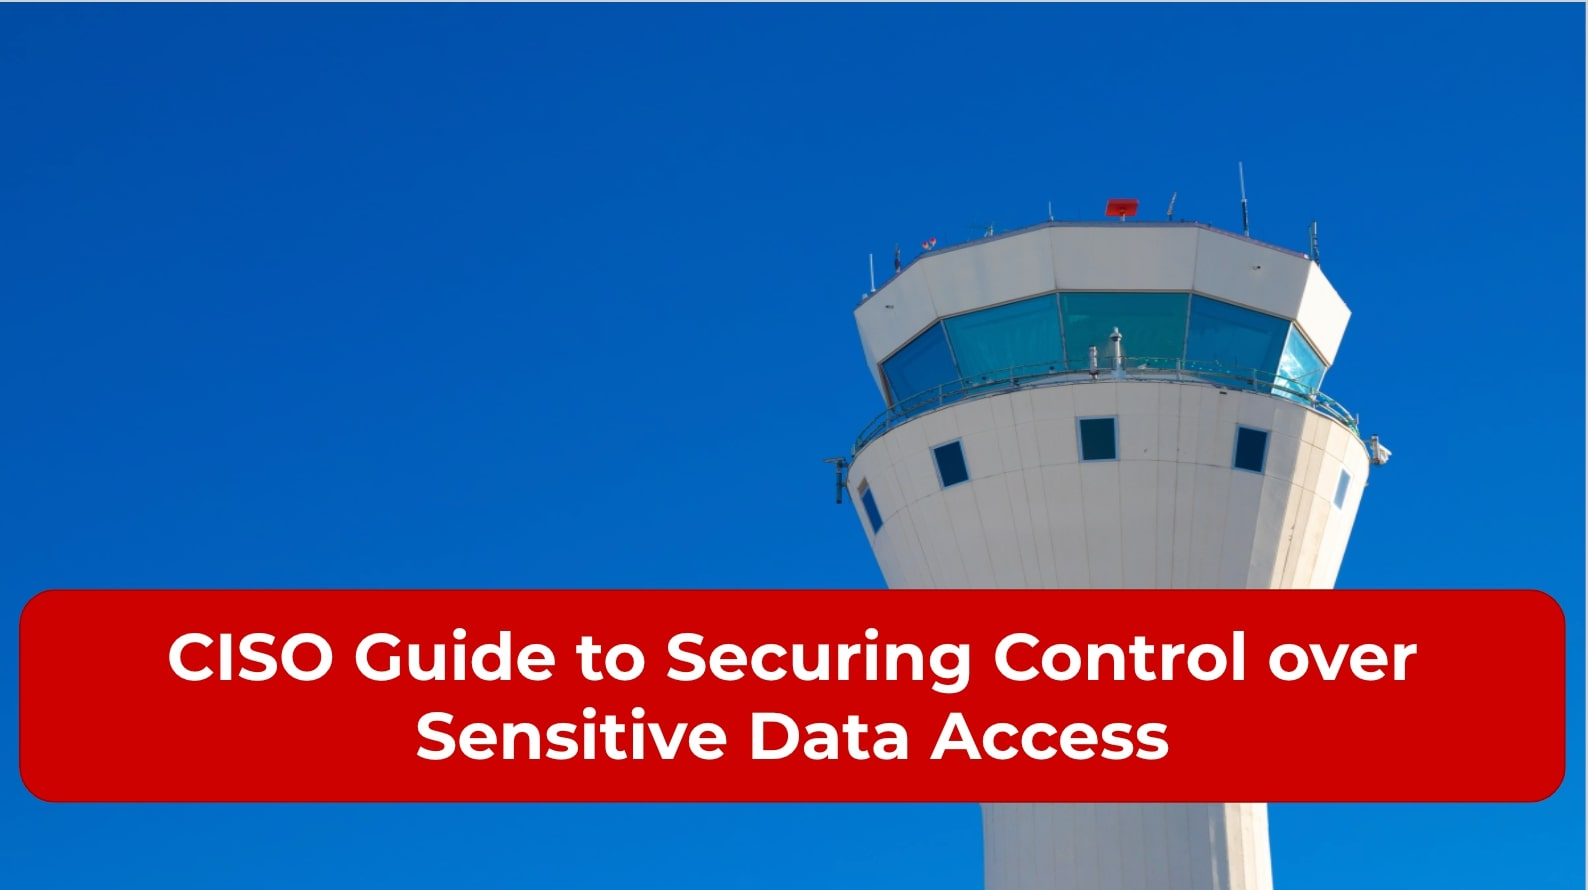 CISO Guide to Securing Control over Sensitive Data Access